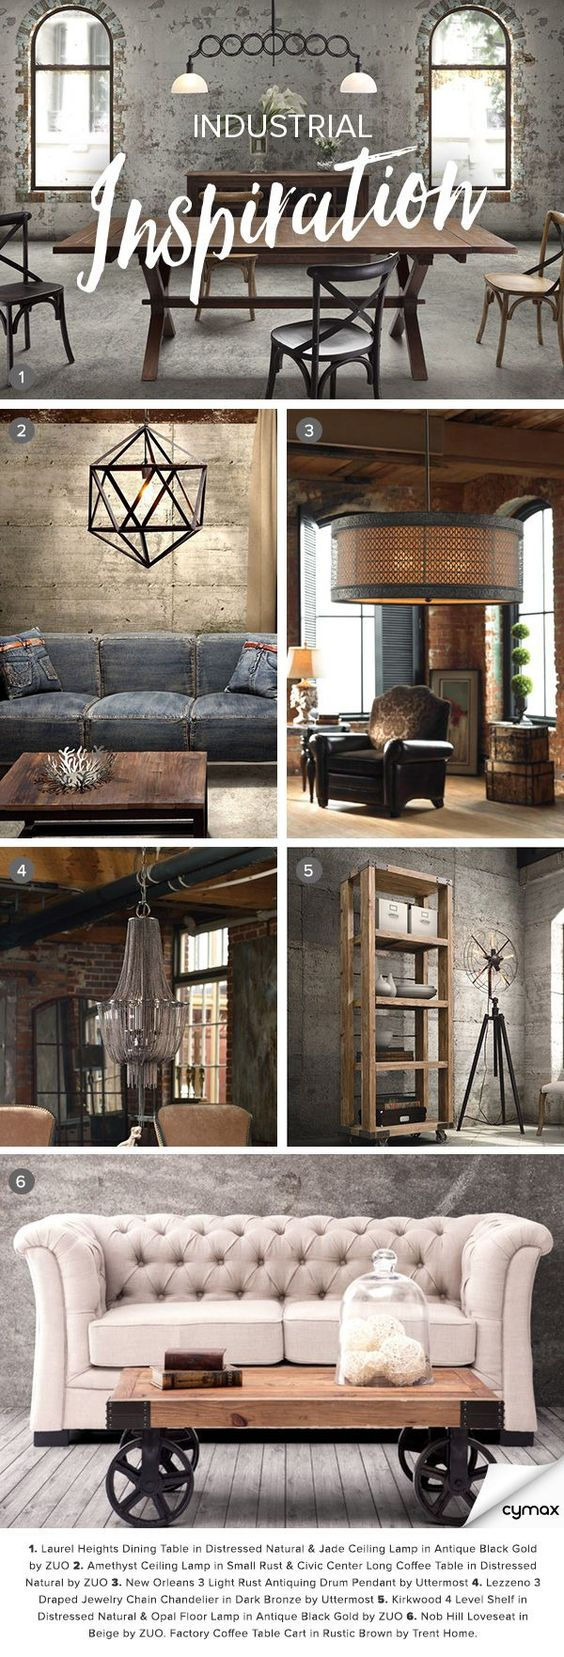 Exposed brick. Gritty textures. Distressed design. If you're a fan of the industrial look, you'll love rummaging through our collection of chic industrial treasures. Click on the image to shop our industrial collection today and save up to 70% off!